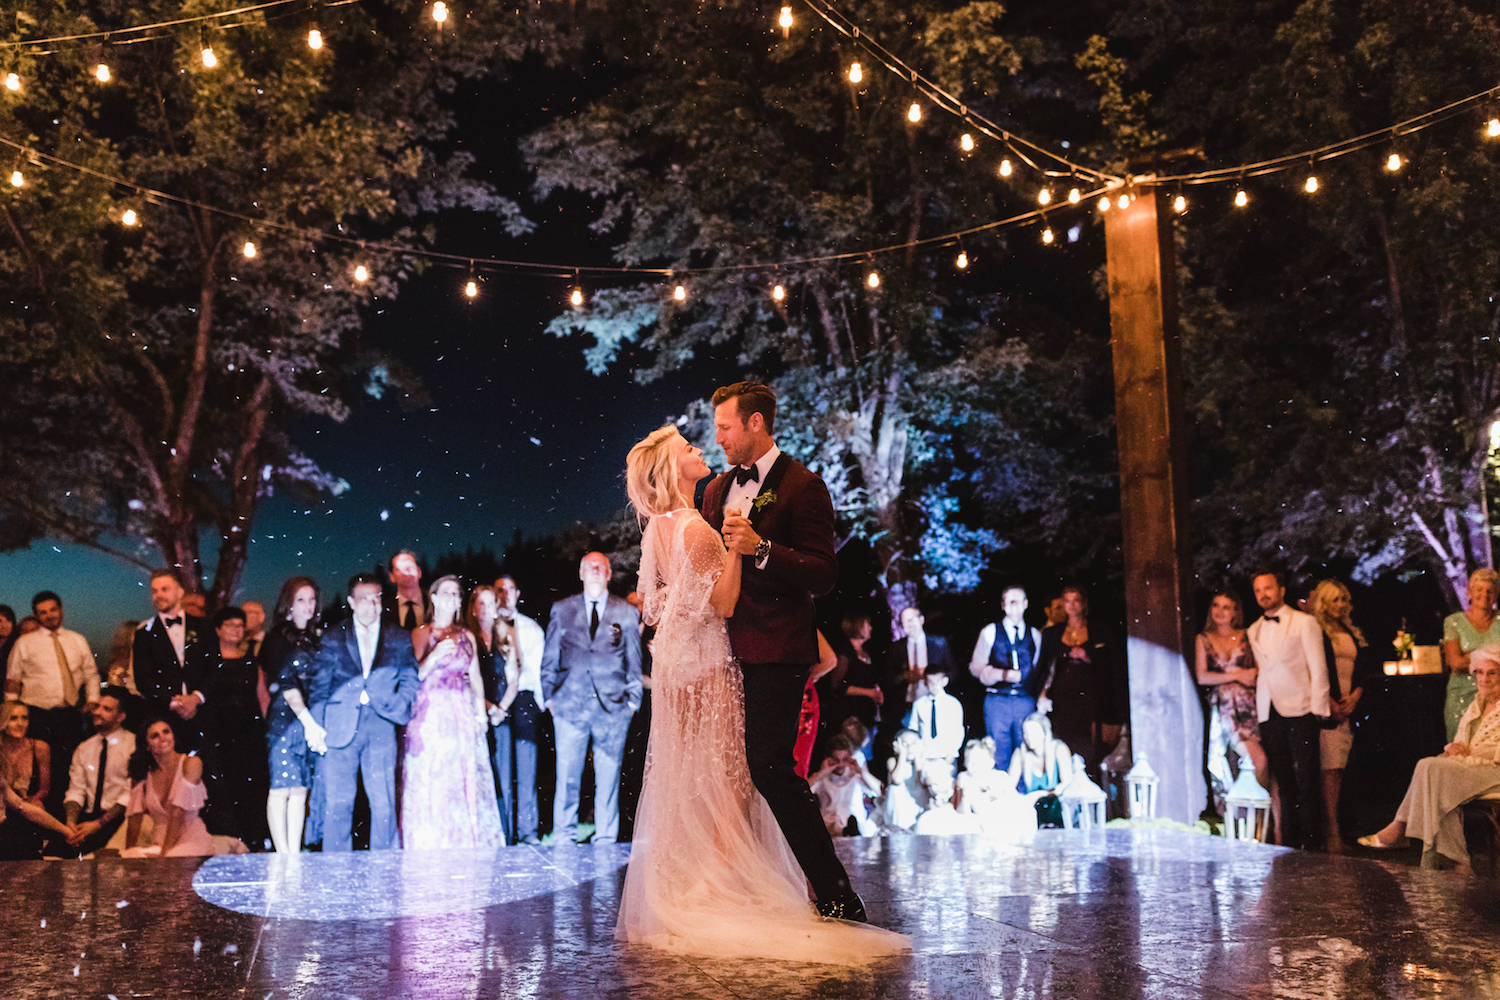 Julianne Hough and Brooks Laich Wedding - Wild Bloom Floral - Sarah Falugo Photography - Simply Troy Event Design 7.jpg